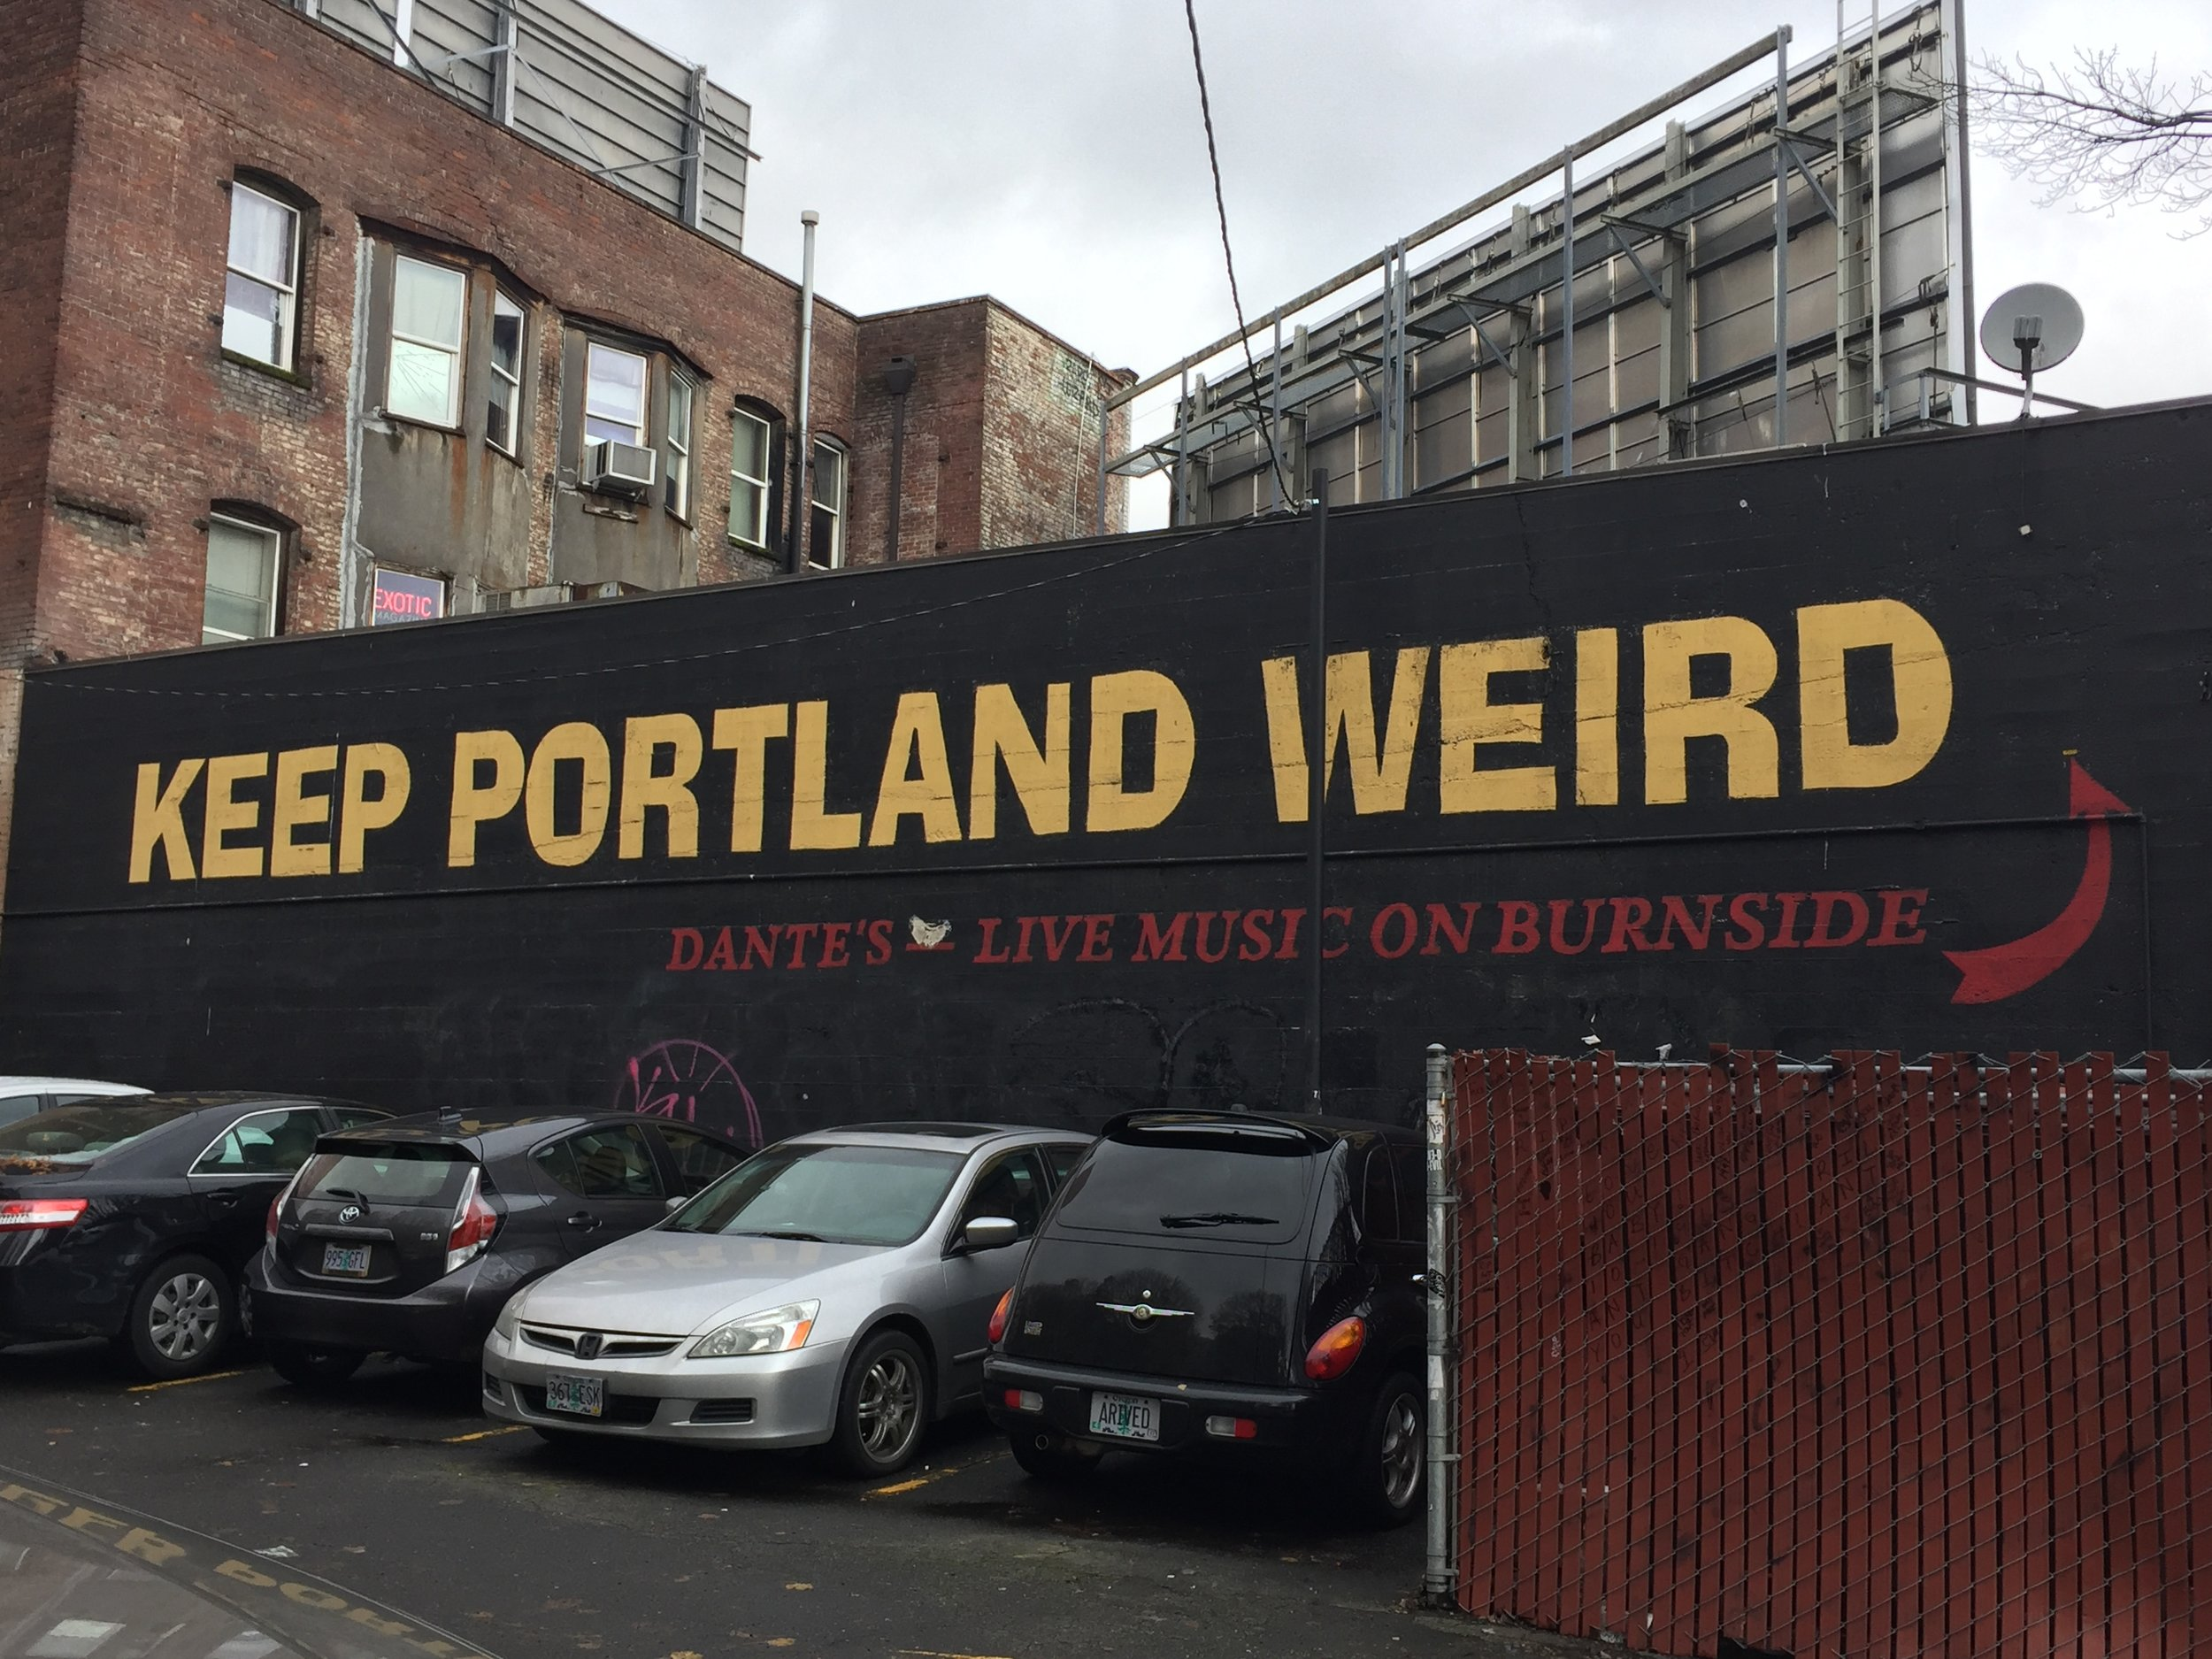 sorry the picture isn't here--it's definitely the Keep Portland Weird mural